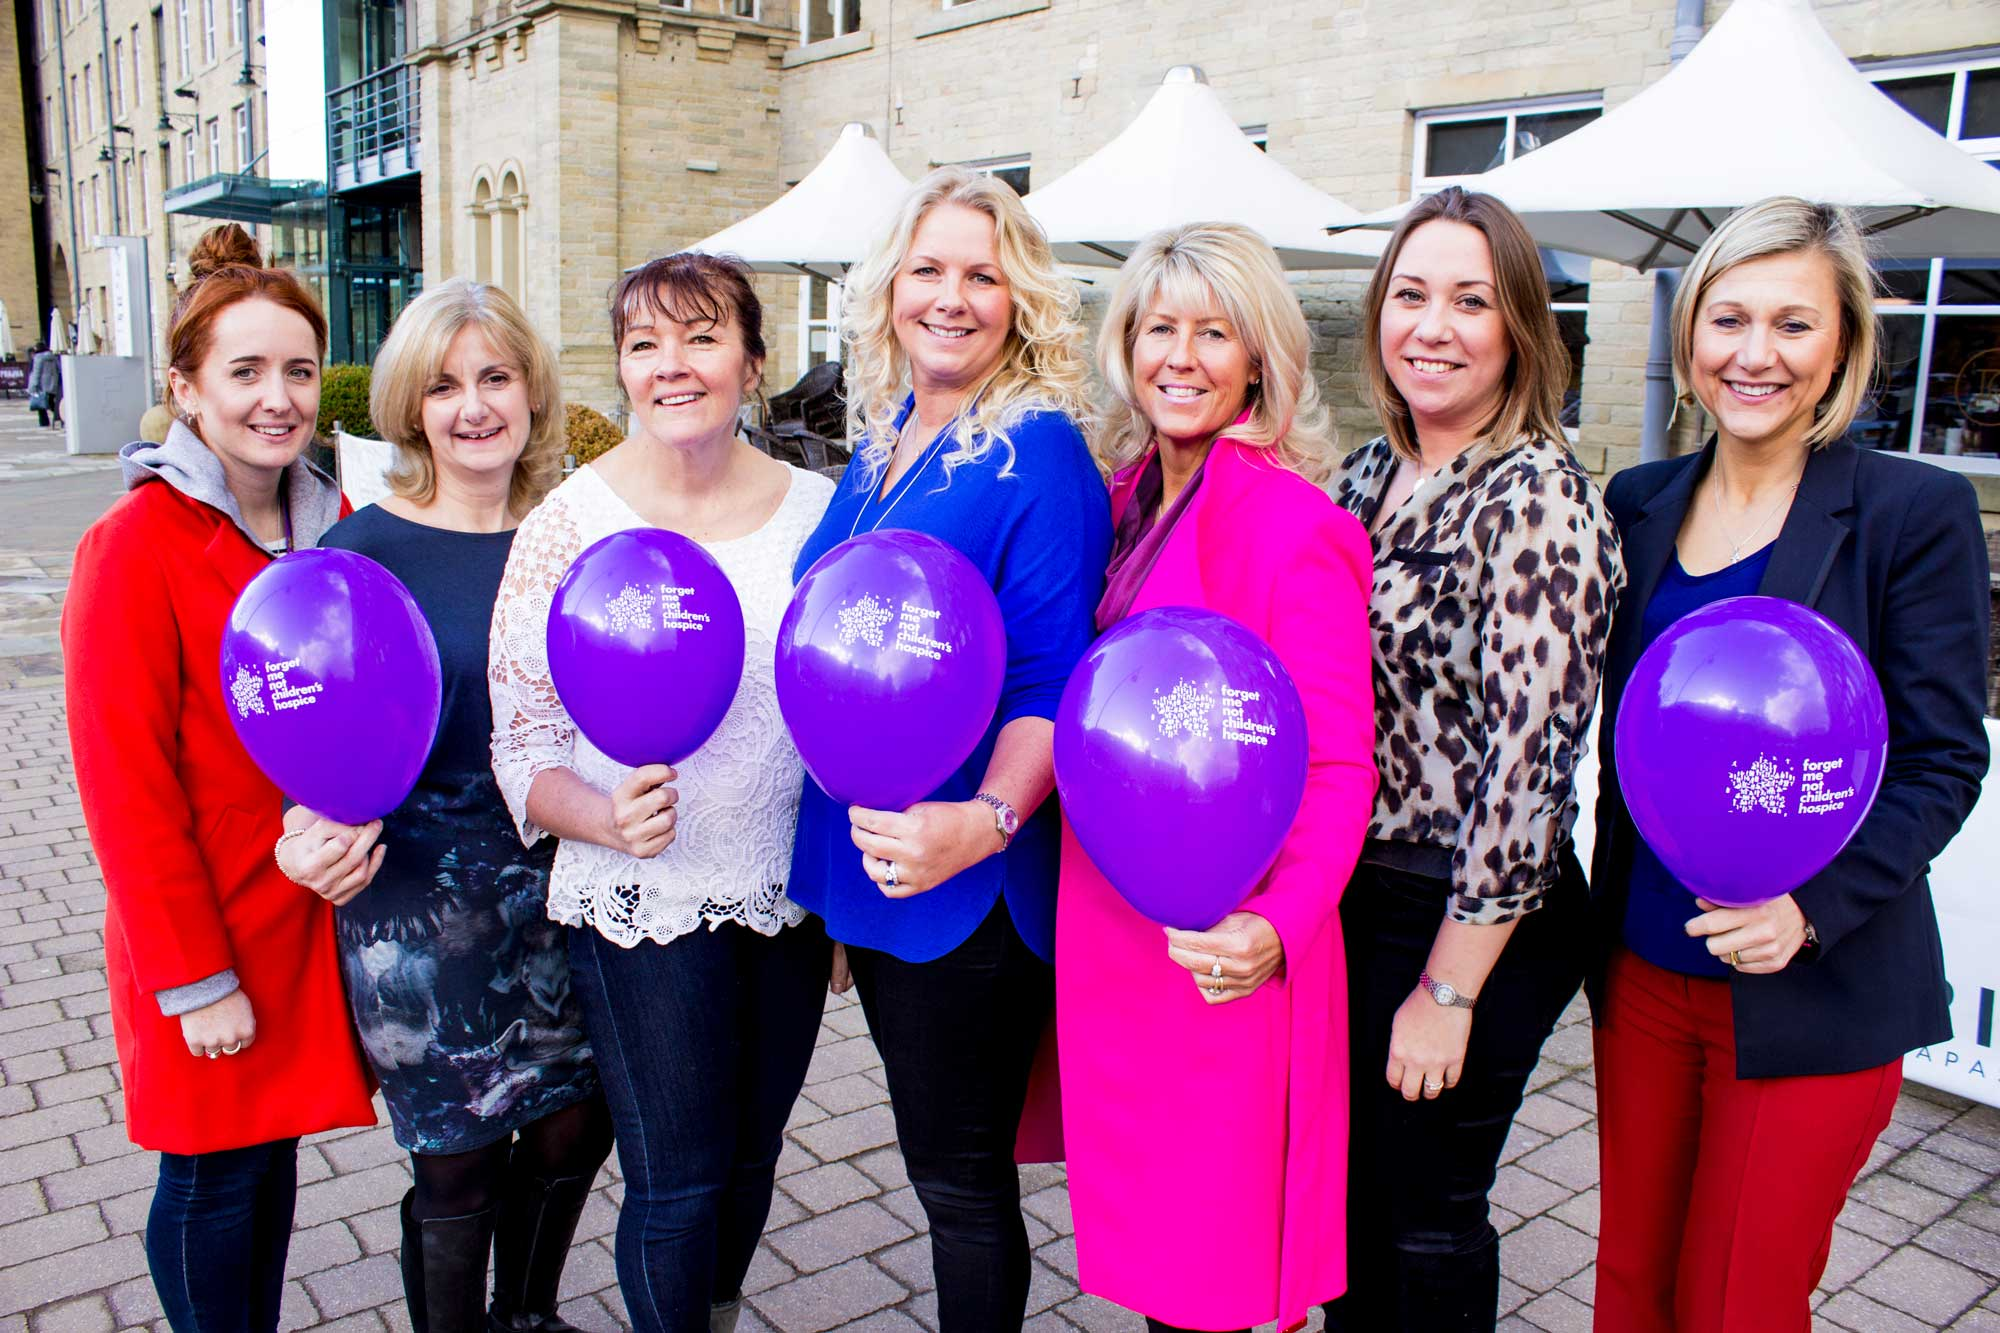 Businesswomen get chance to shine at charity Bling Fling event